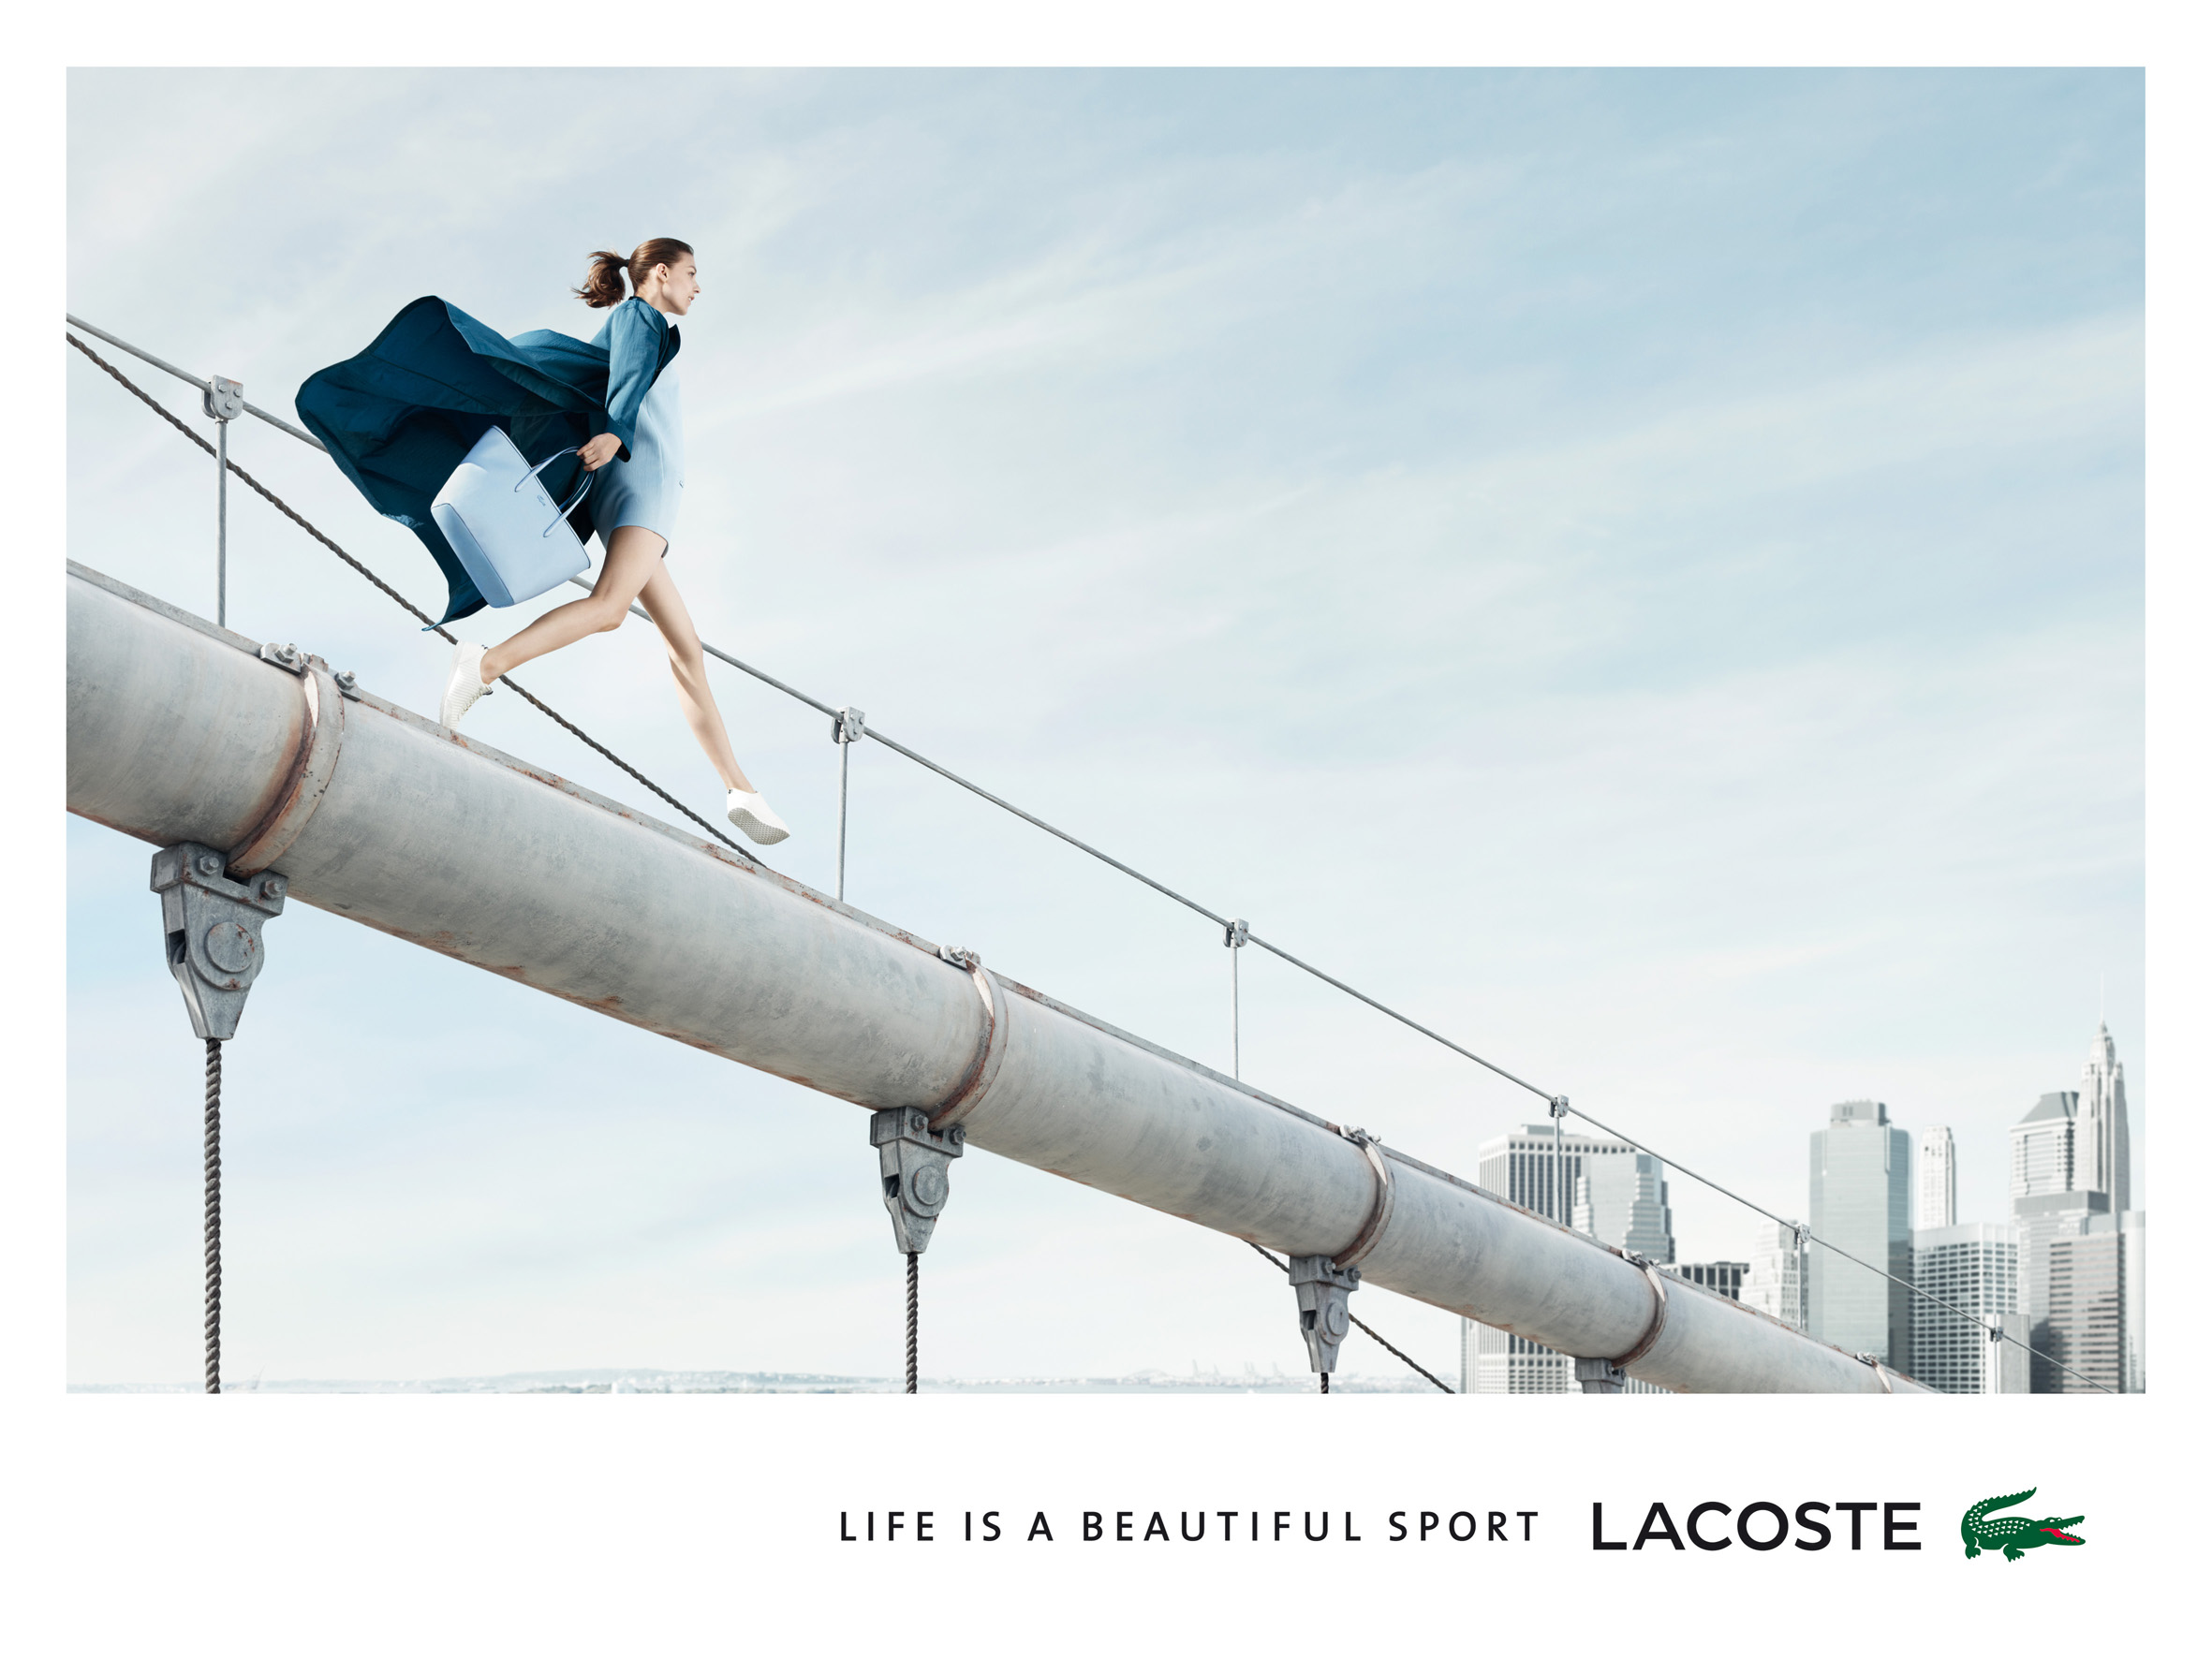 Life is a Beautiful Sport Campaign